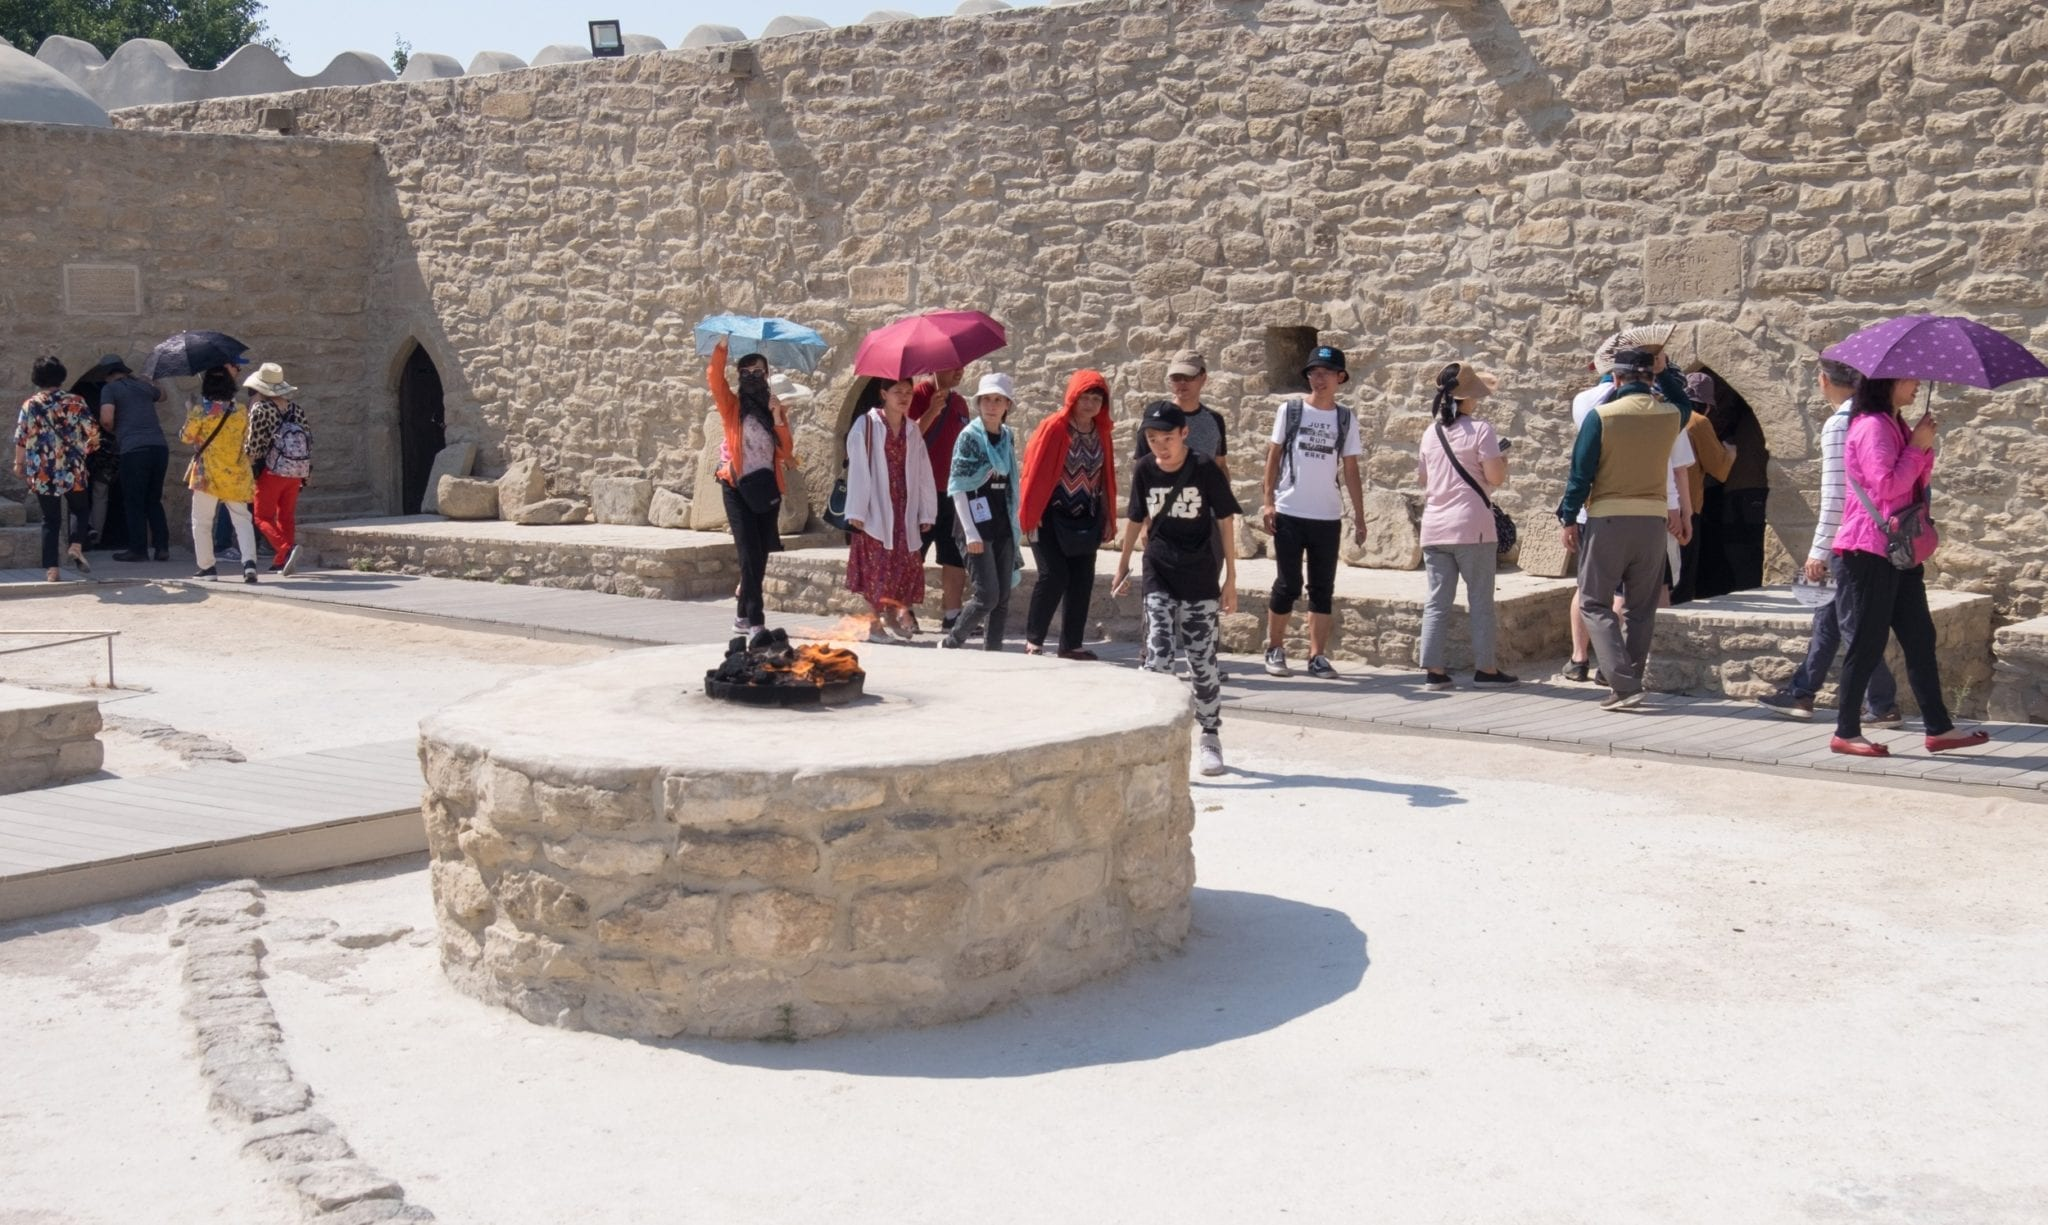 Fire bursts out of a well-like opening at Ateshgah Temple; behind it, tourists walk in a line and explore.